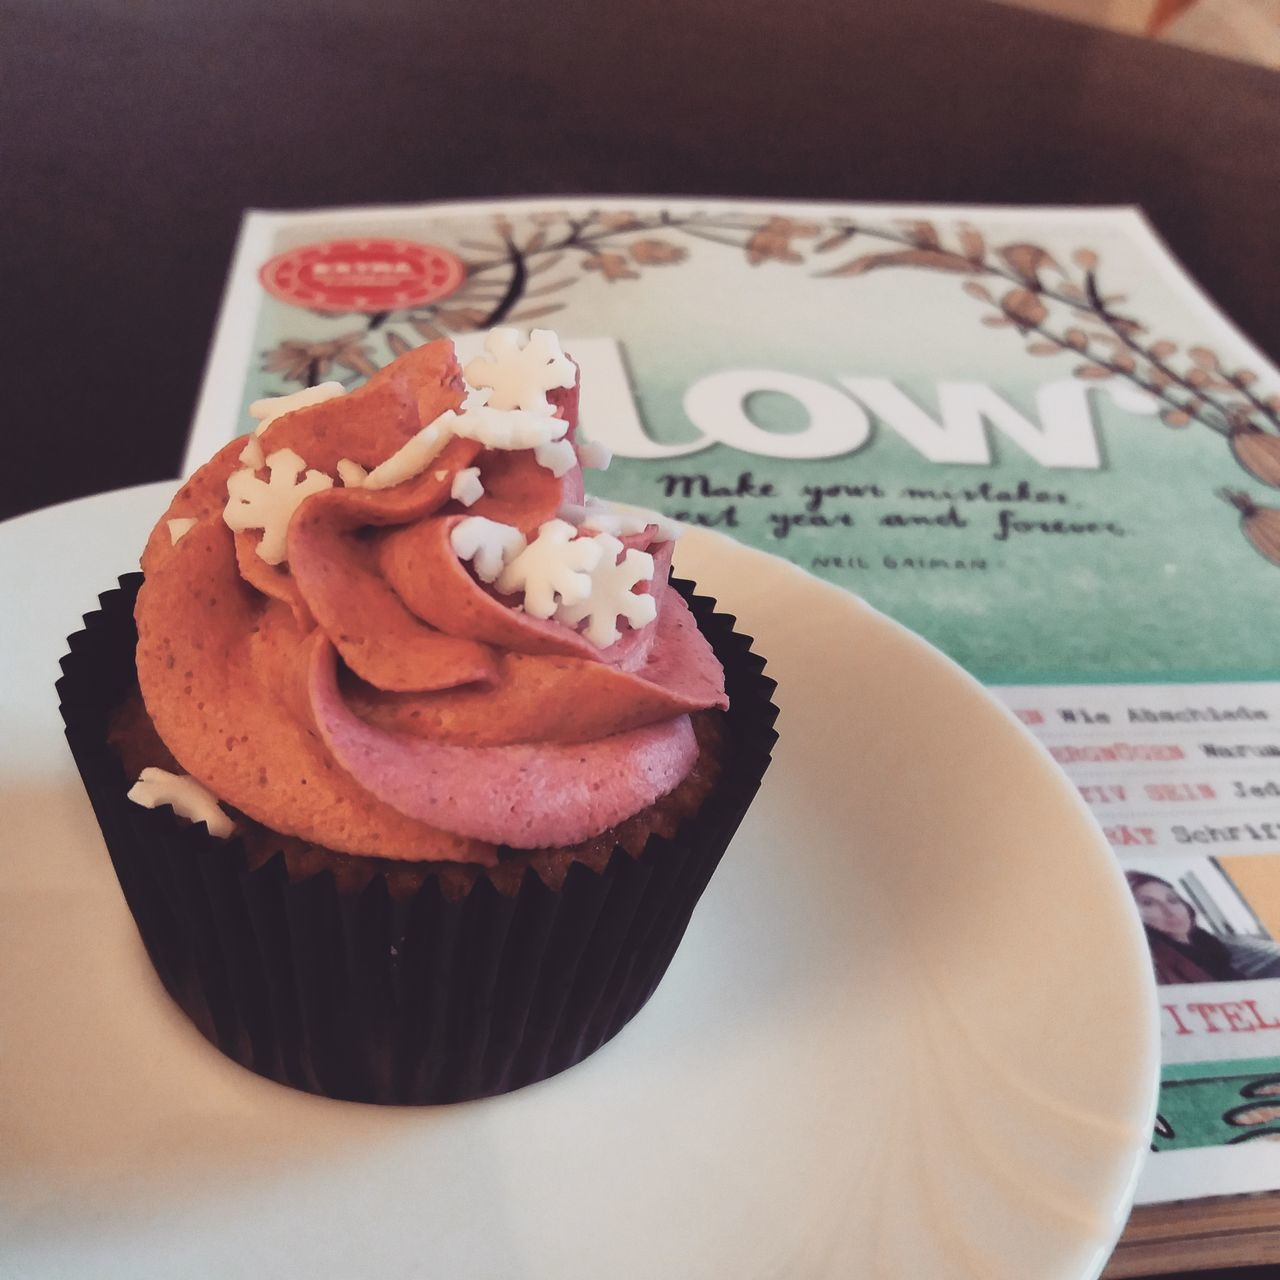 Flow  Flowmagazine Sweet Food Cake Food And Drink Dessert Indoors  Ready-to-eat No People Close-up Cupcakes Magazine Magazine Cover Mindfulness Mindful Pink Snowflake